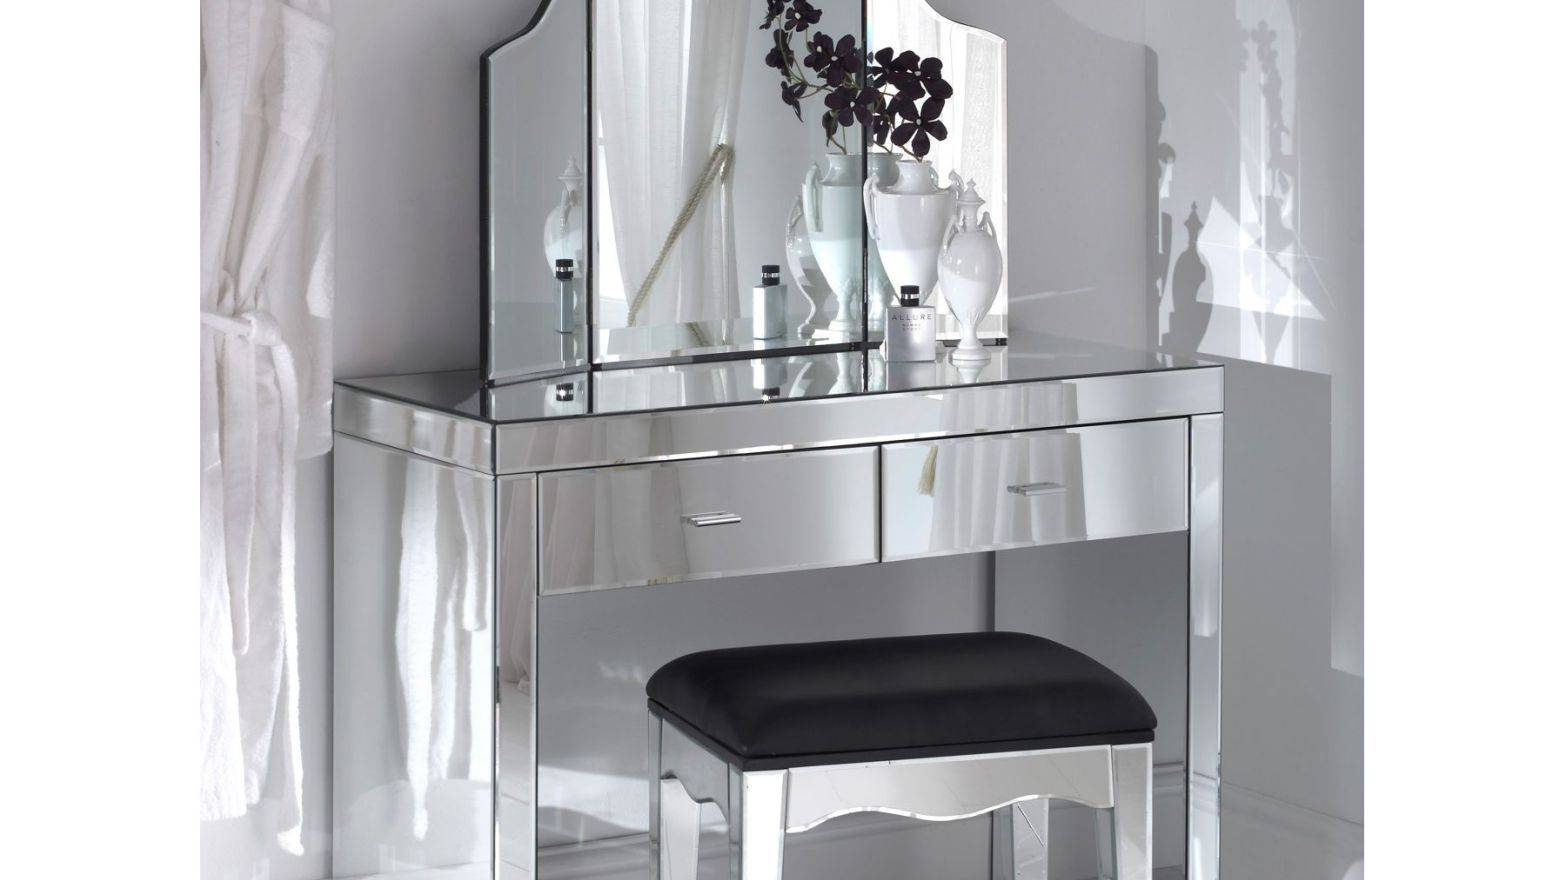 Mirror : Furniture: Mesmerizing Oversized Floor Mirror For Home With Regard To Floor Dressing Mirrors (View 12 of 15)